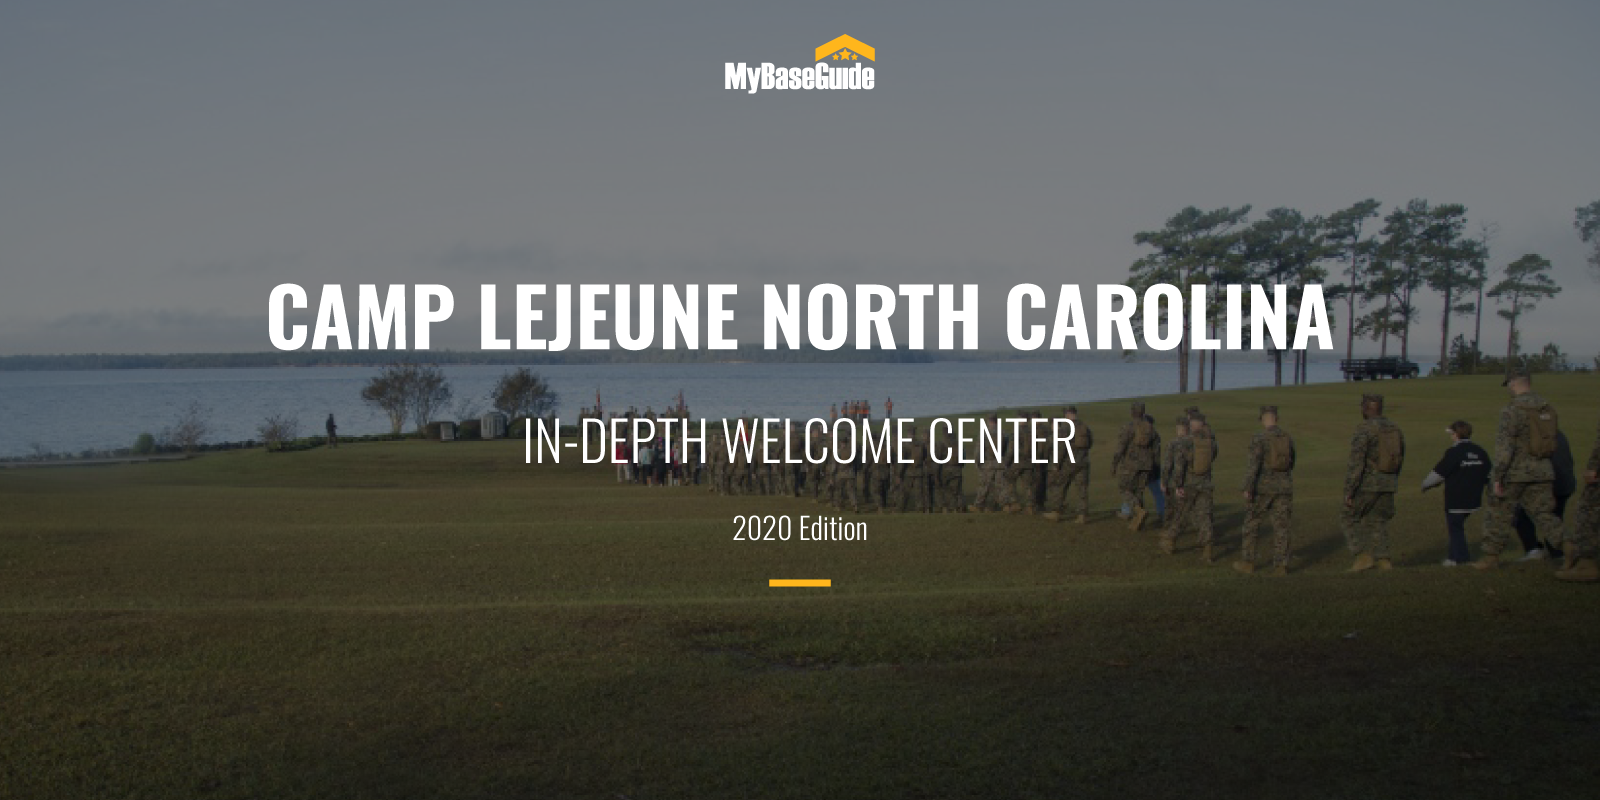 Camp Lejeune North Carolina